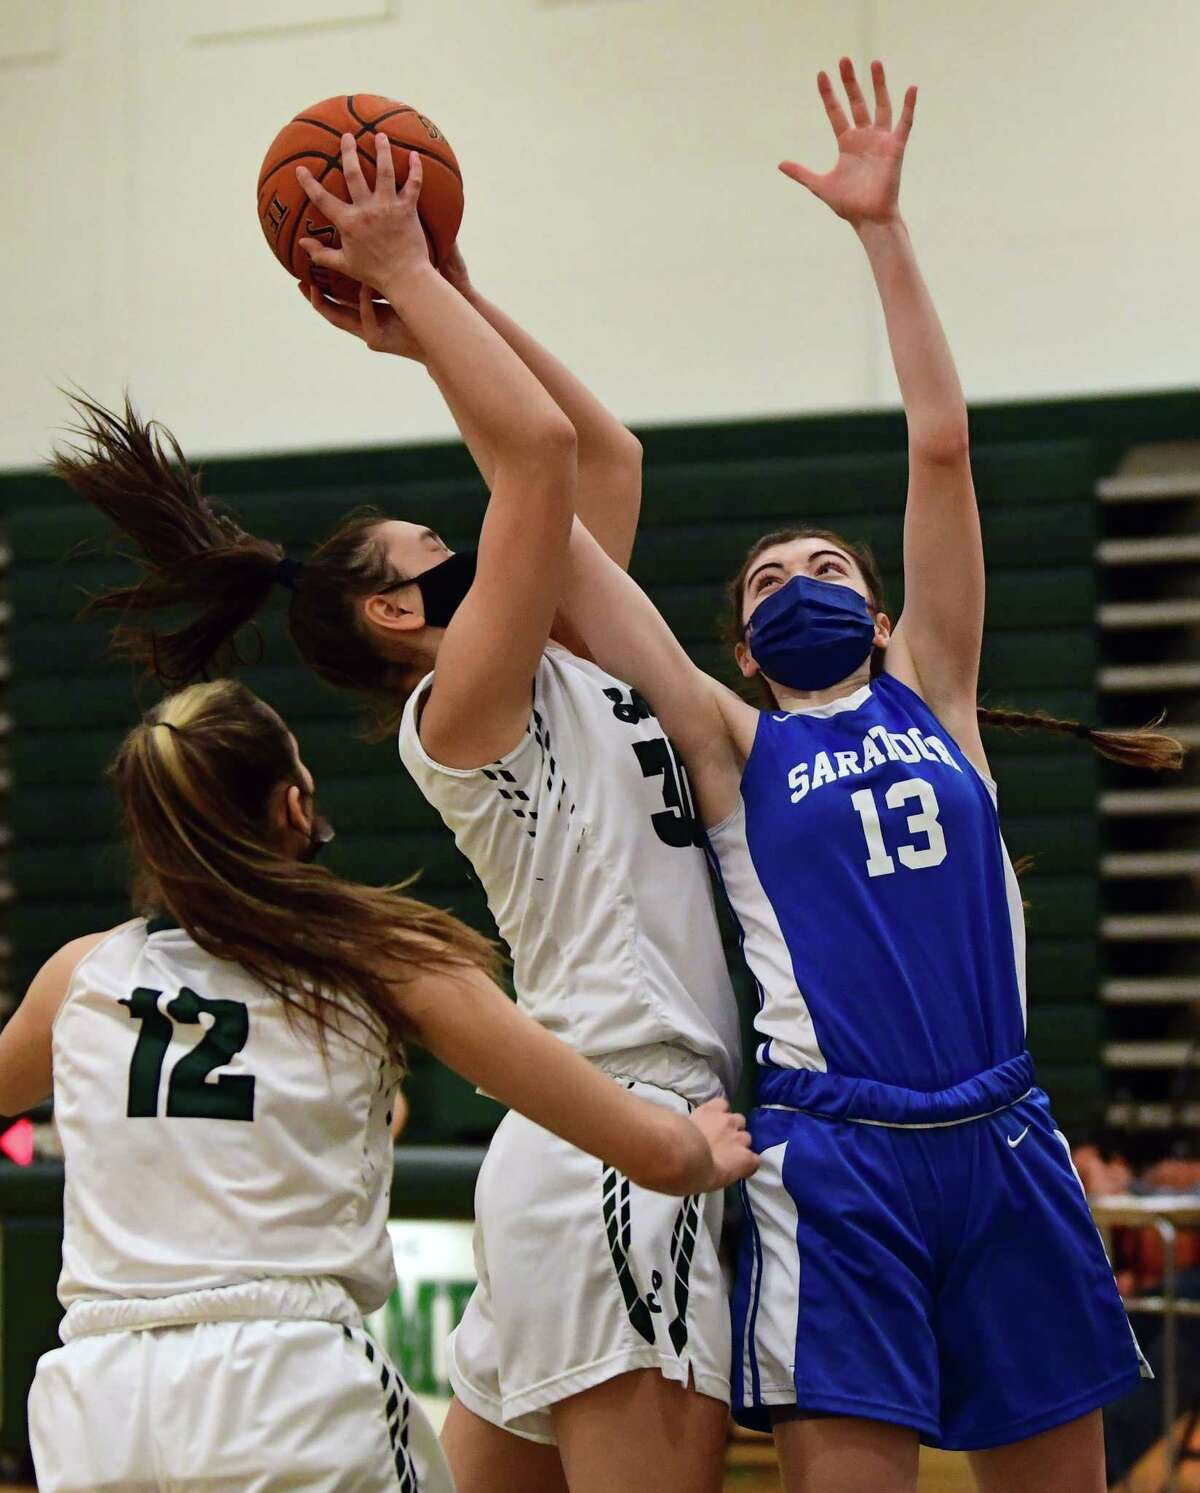 Shenendehowa's Sam Lee and Saratoga's Nora Carminucci battle for a rebound during a basketball game on Friday, March 12, 2021 in Clifton Park, N.Y. (Lori Van Buren/Times Union)